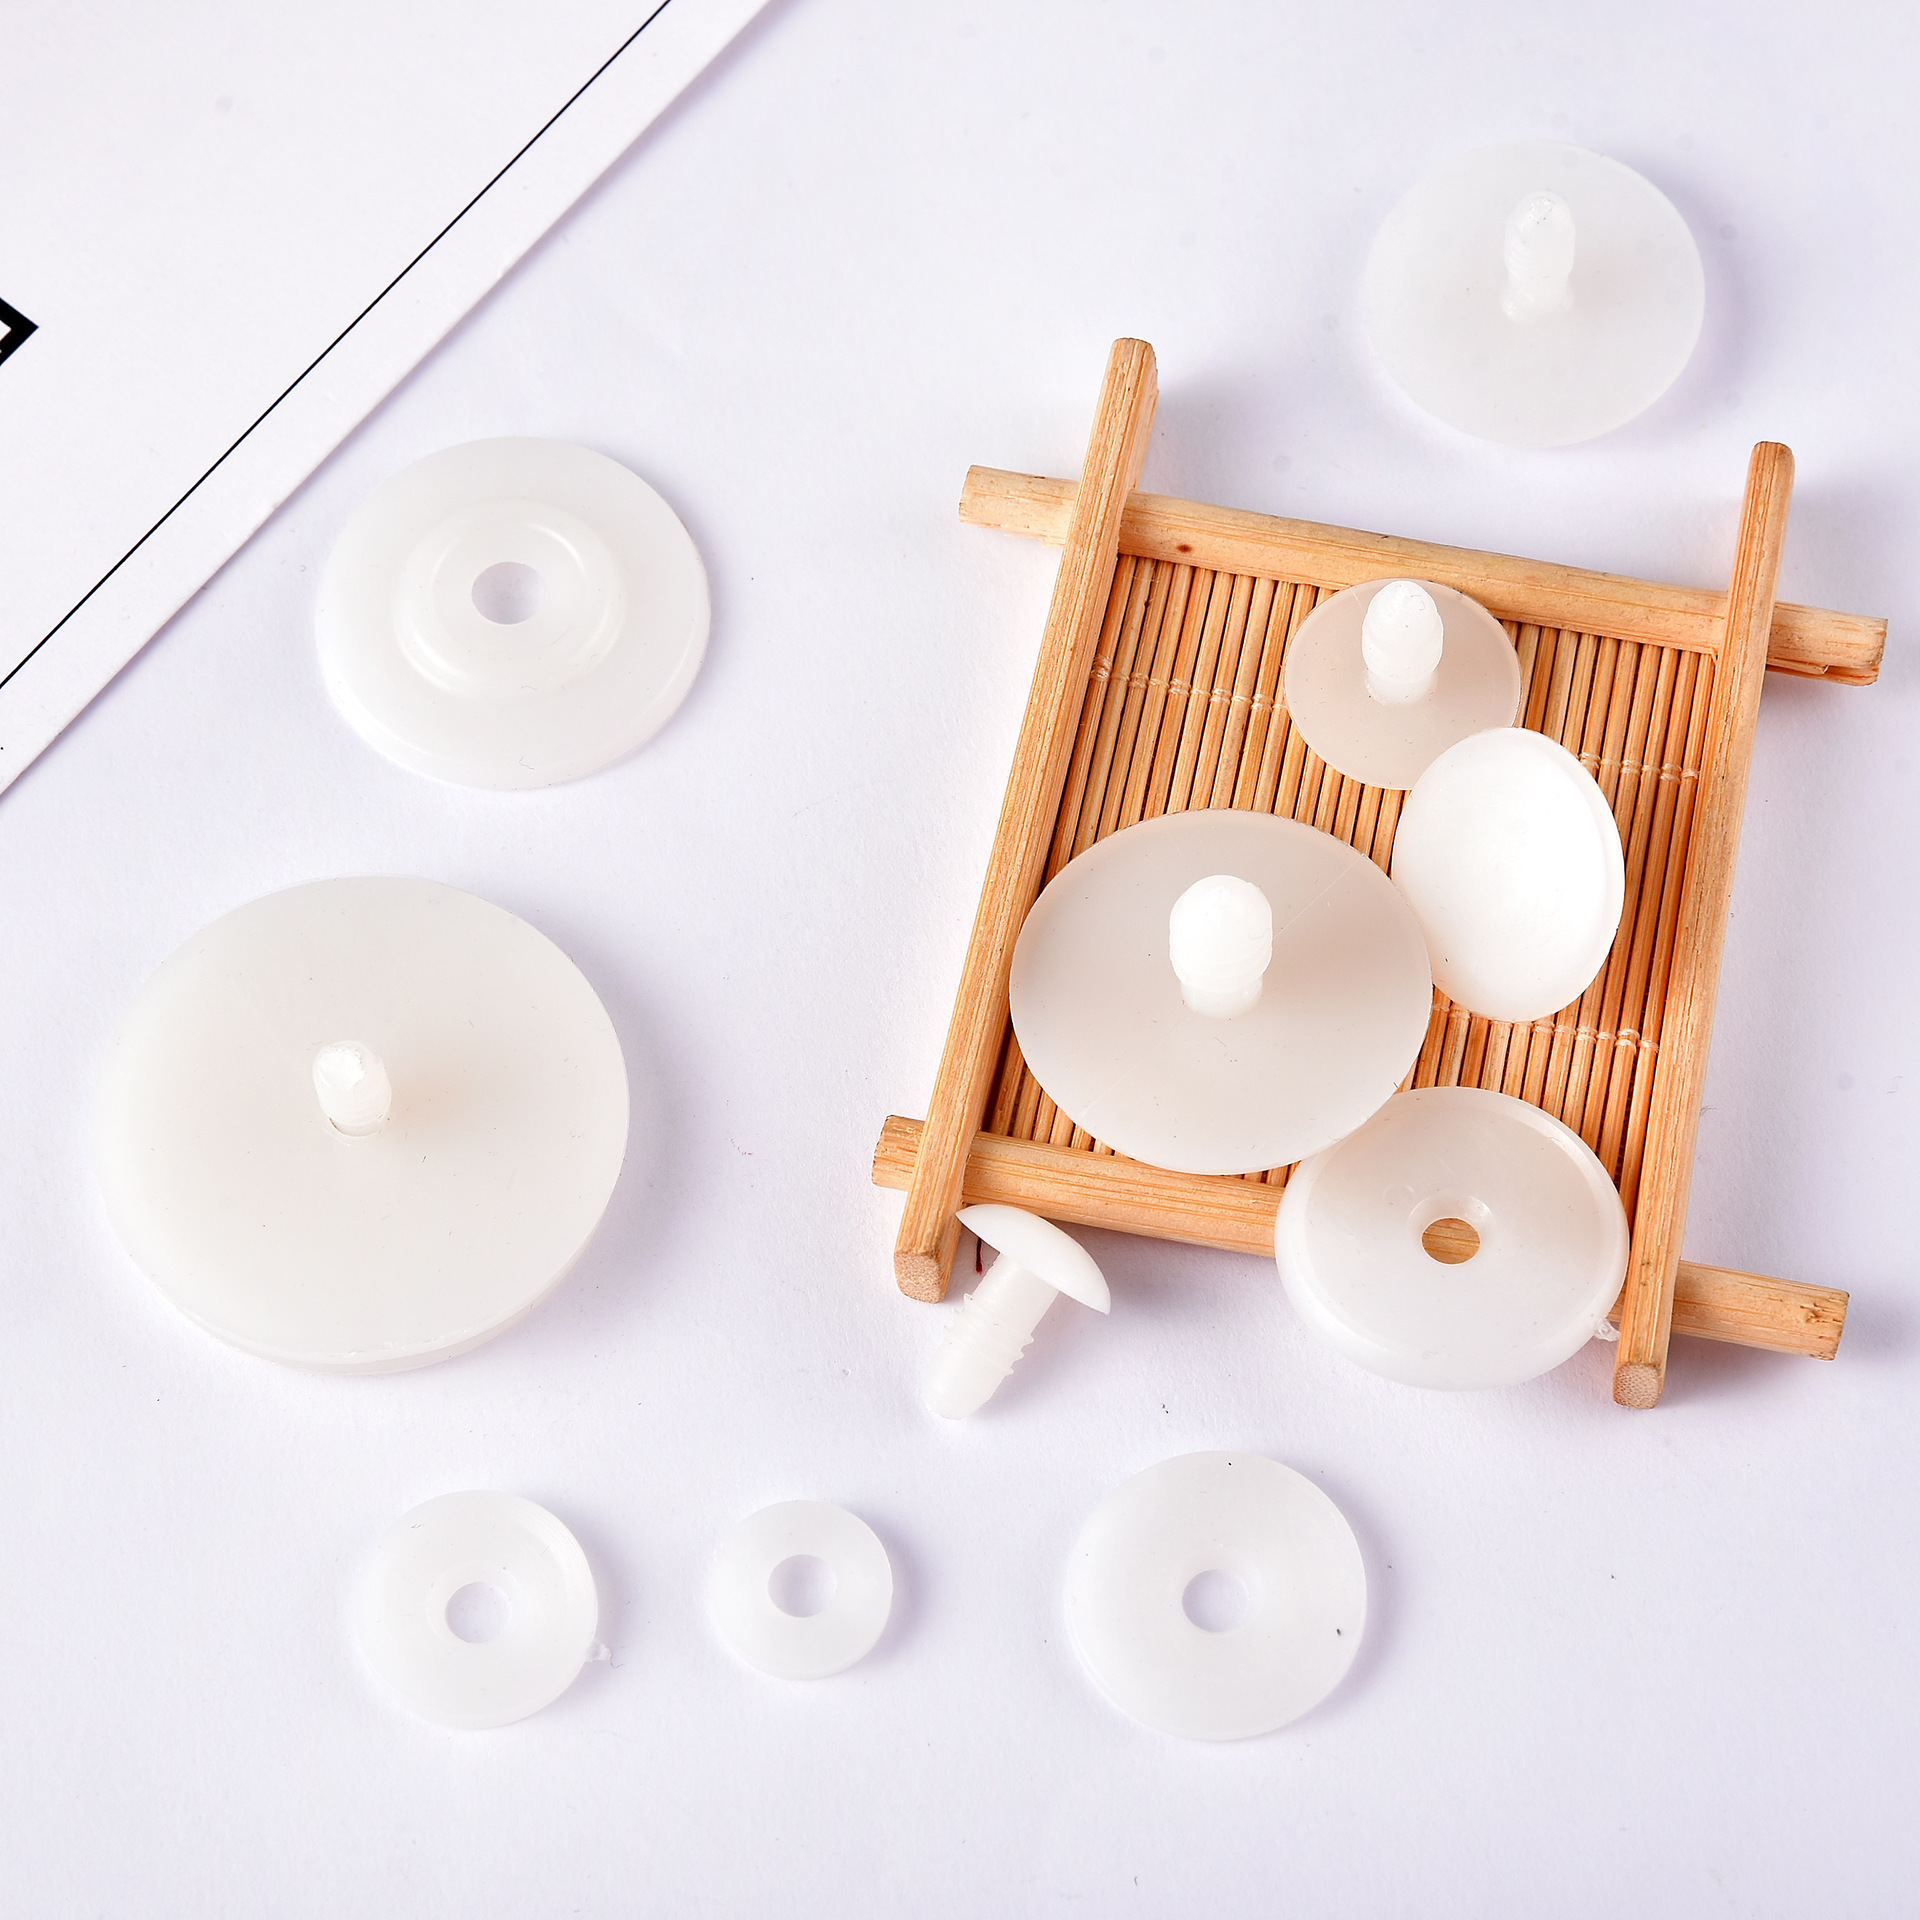 50 Set 15/20/25mm White Plastic DIY Doll Joints Teddy Bear Making Crafts Gifts Kids Toy Dolls Accessories Gifts For Child Toys